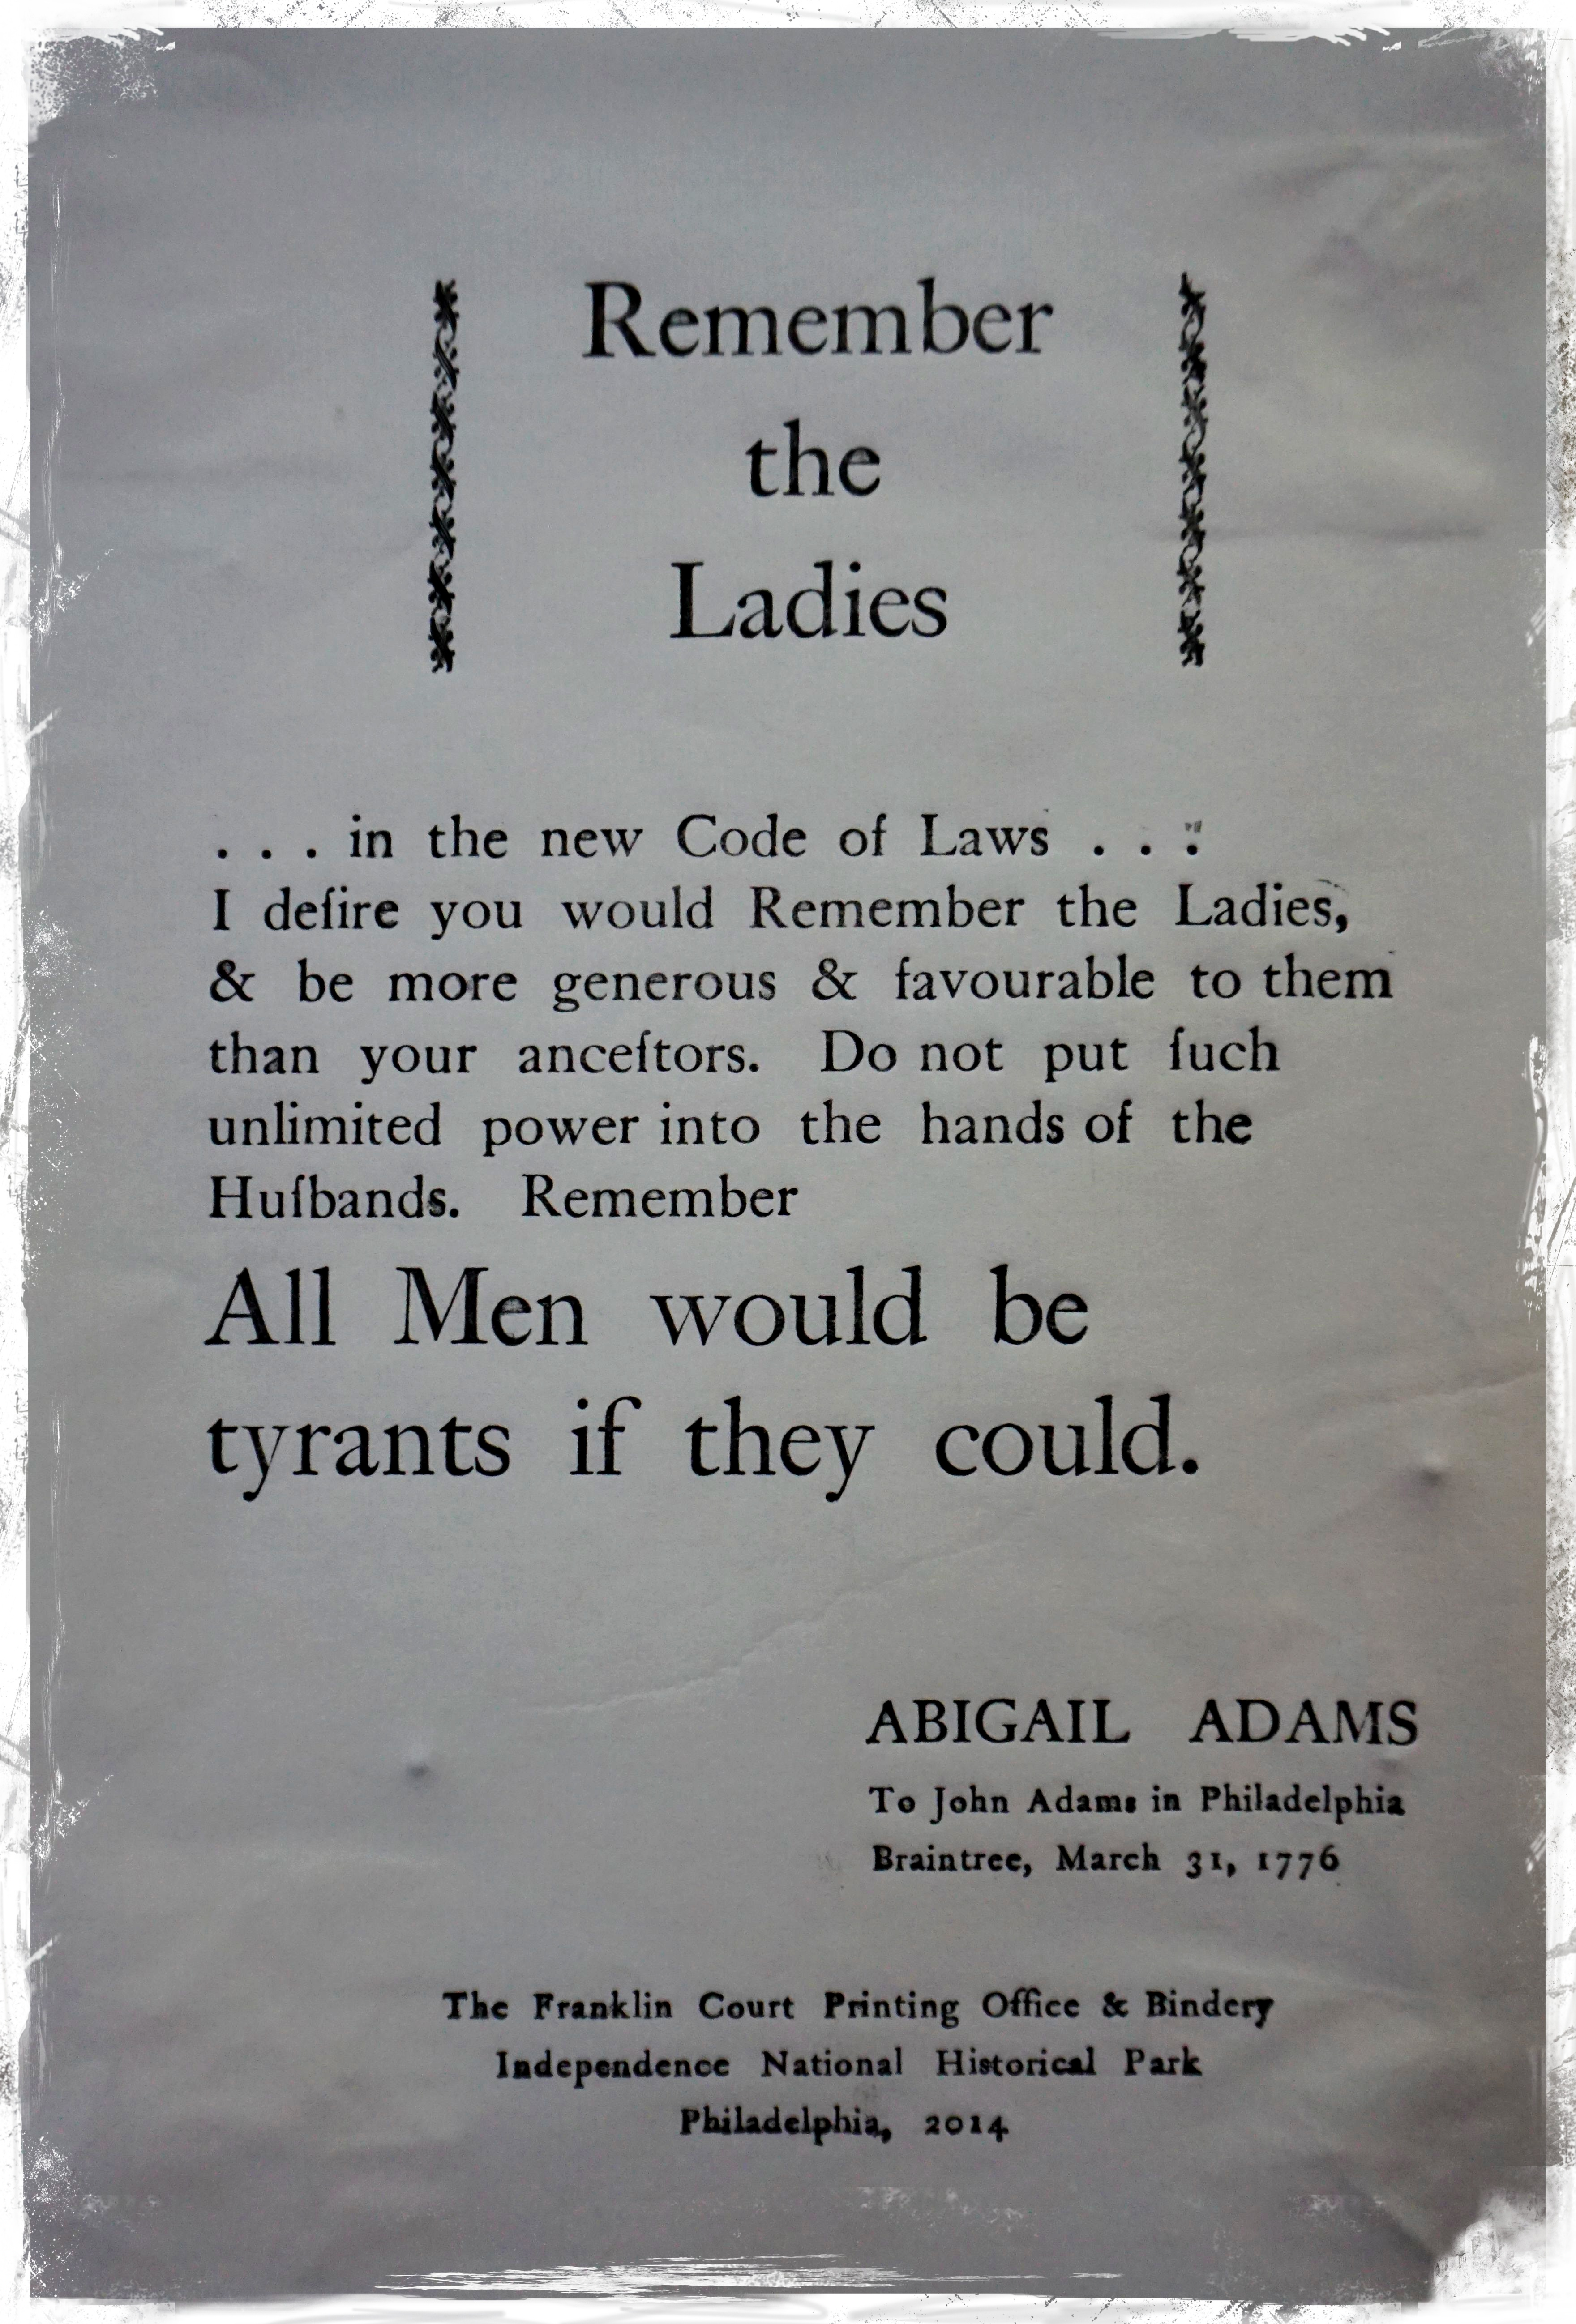 remember the ladies in the declaration The role of women`s suffrage in the history of the united states of america   make i desire you would remember the ladies and be more generous and  favorable  that declaration spread the fire of a revolution that would reach  every facet of.